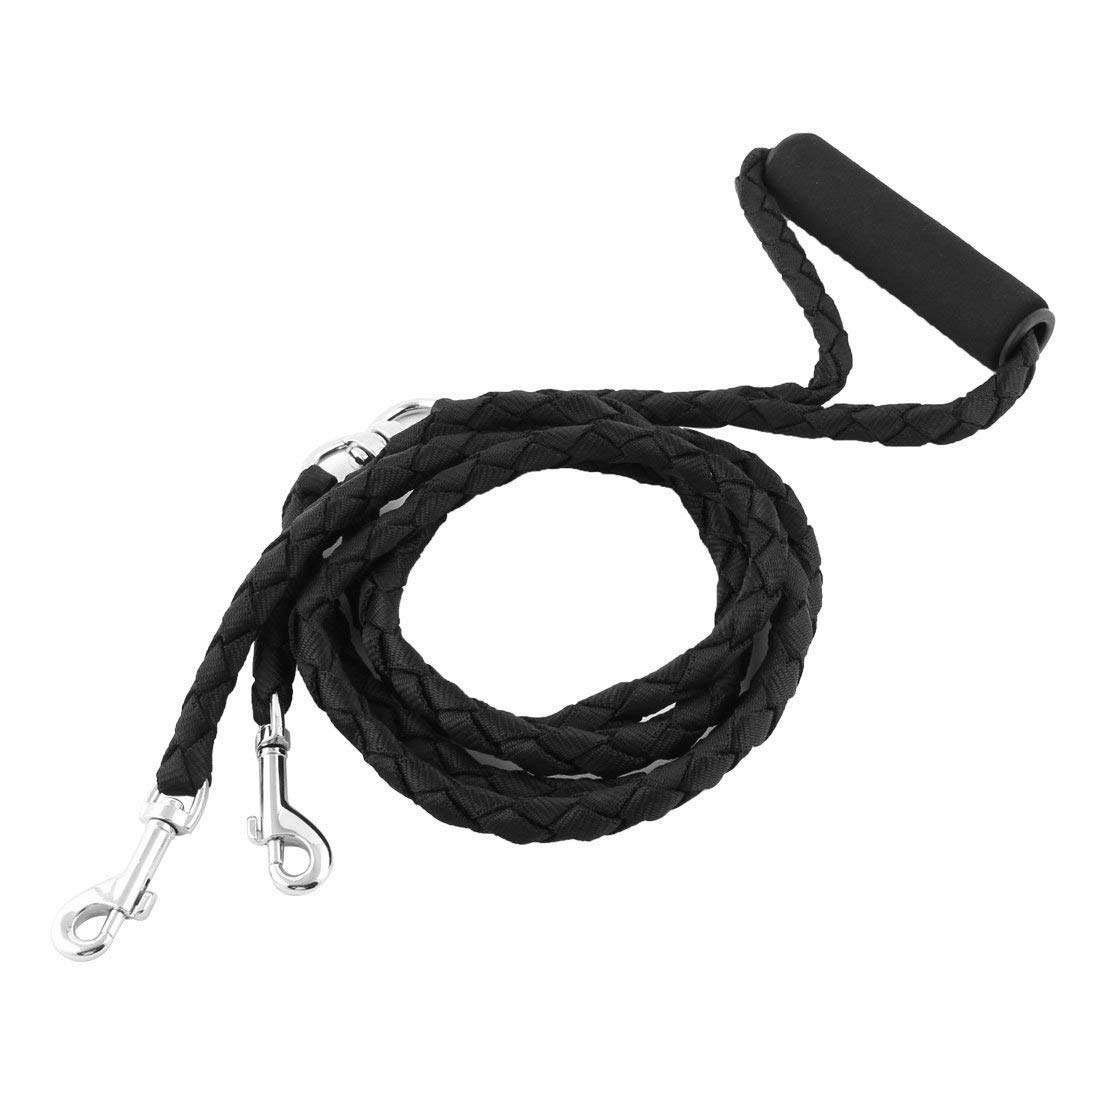 1Pc Black, M   6 colors Strong Nylon Hand Free Dog Leash Pet Leads for Running Jogging Hiking Walking